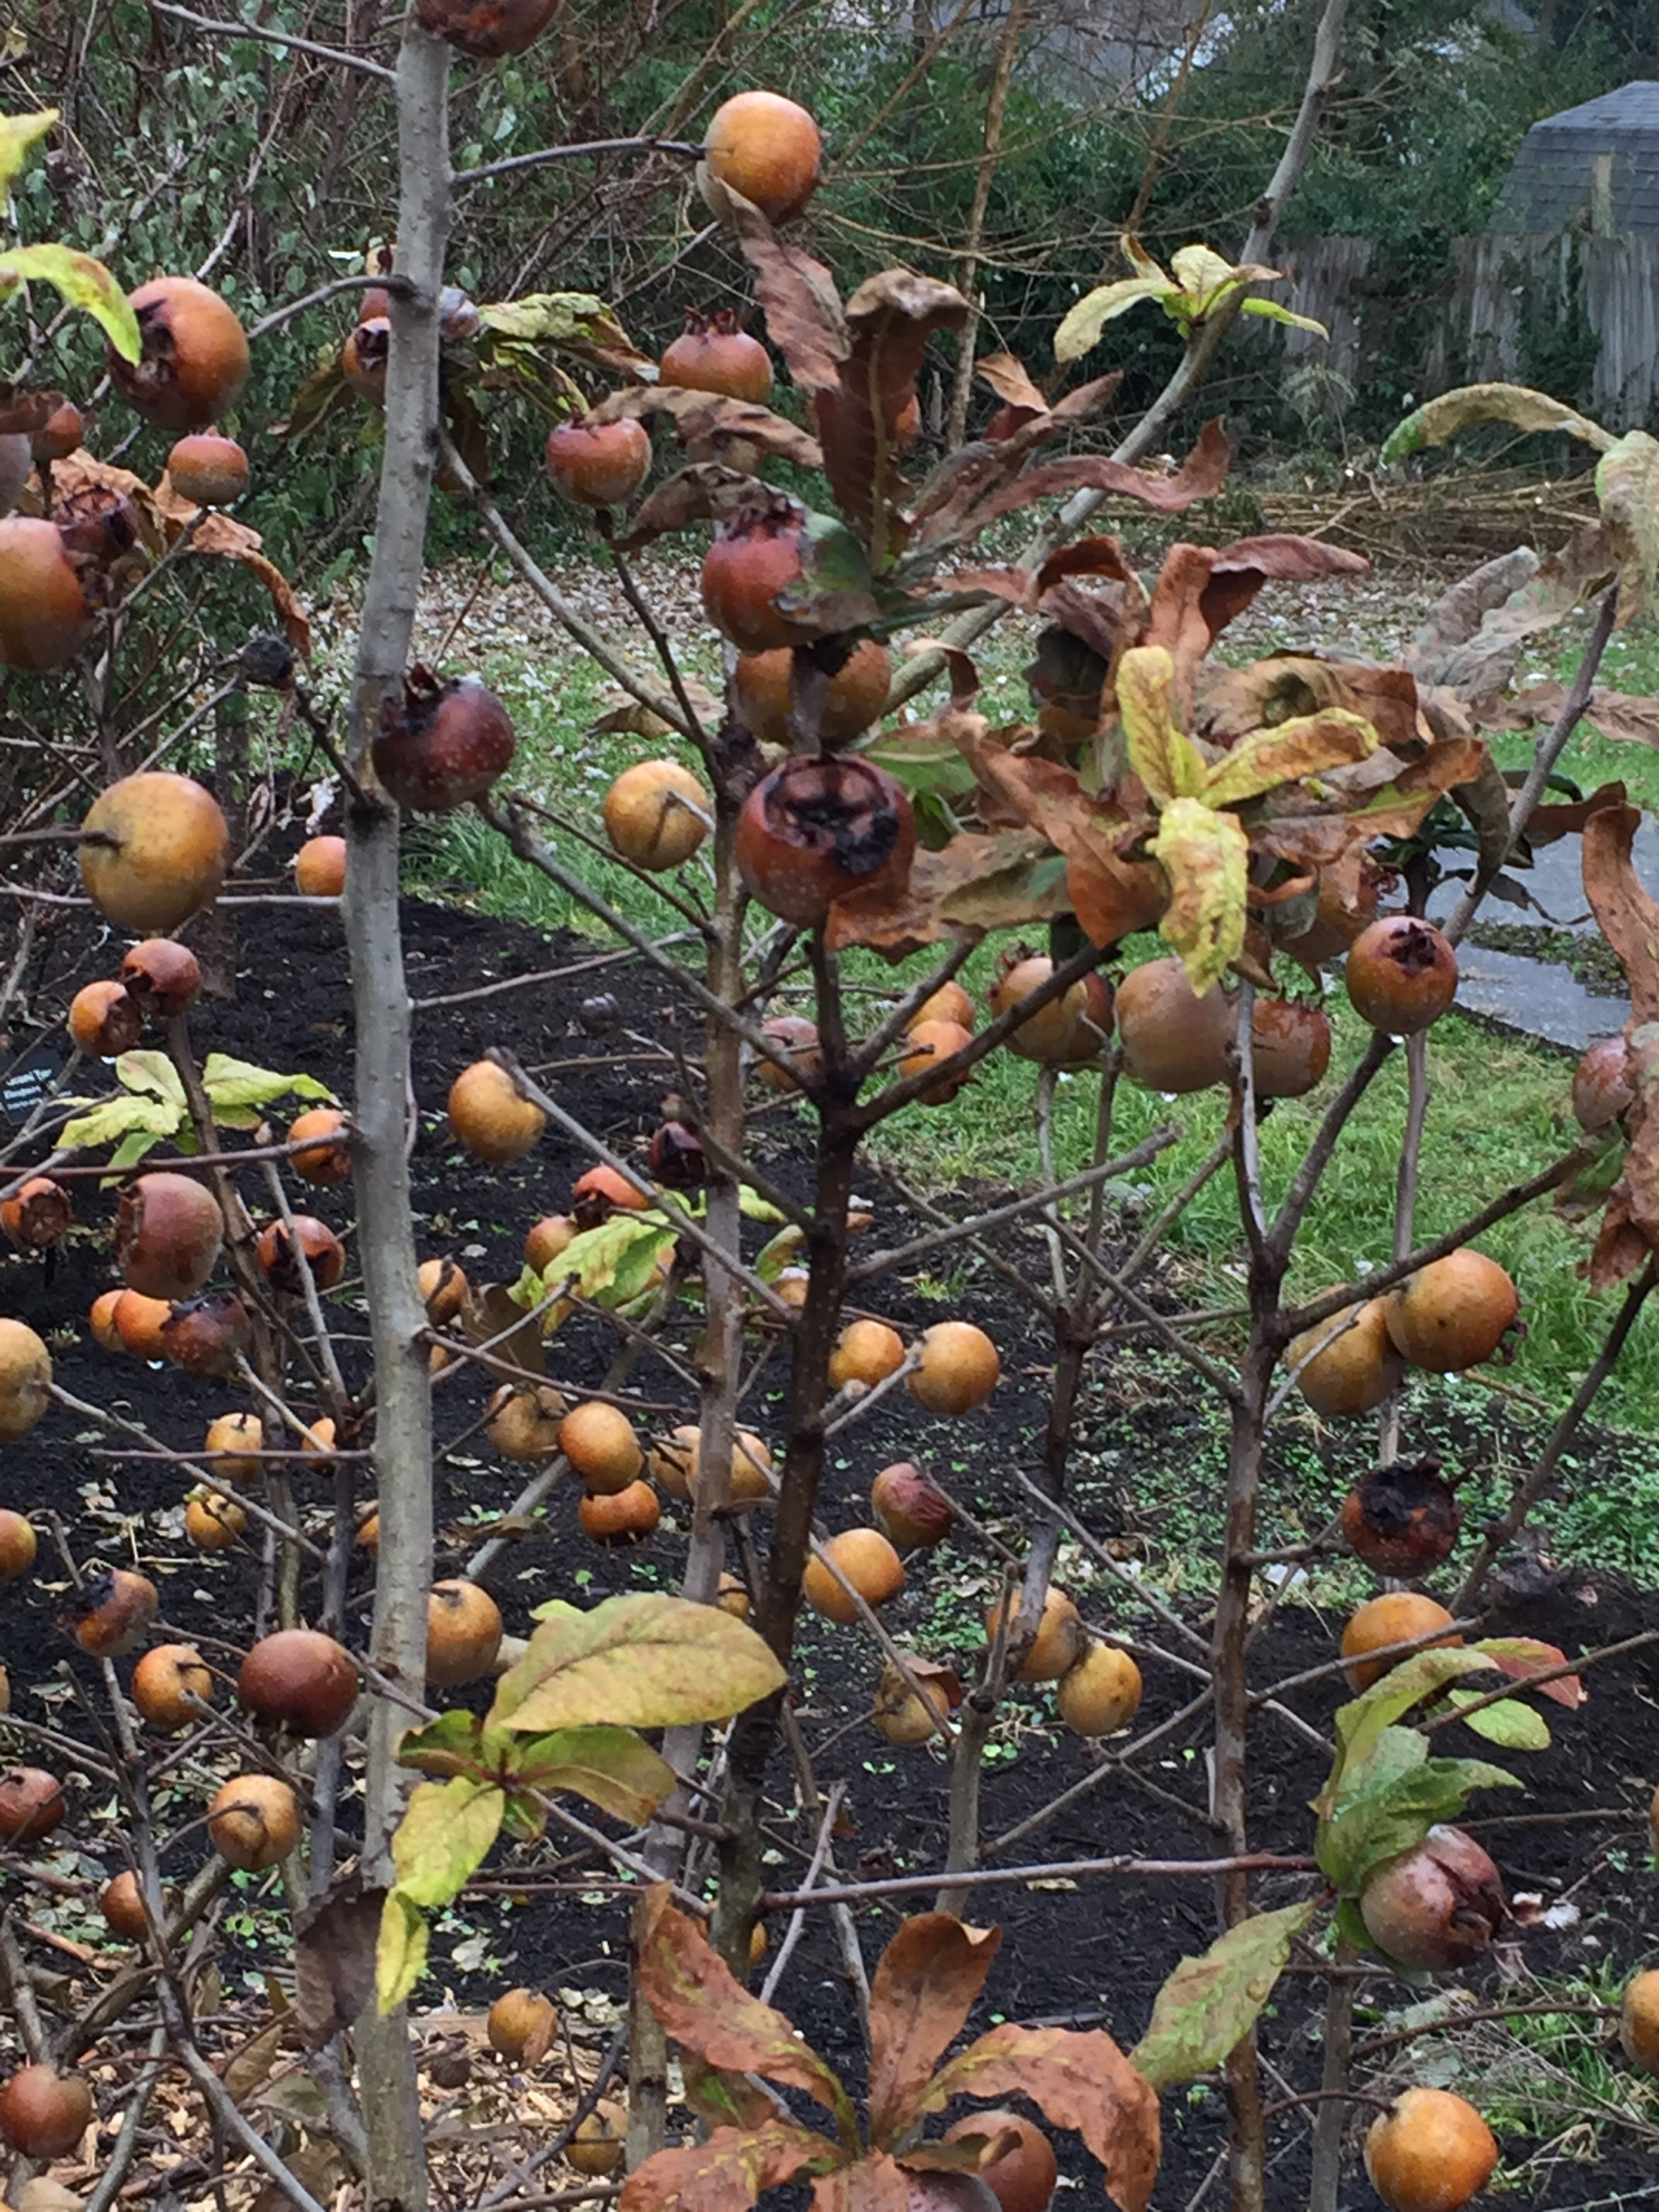 Medlars, ready to be plucked and eaten.